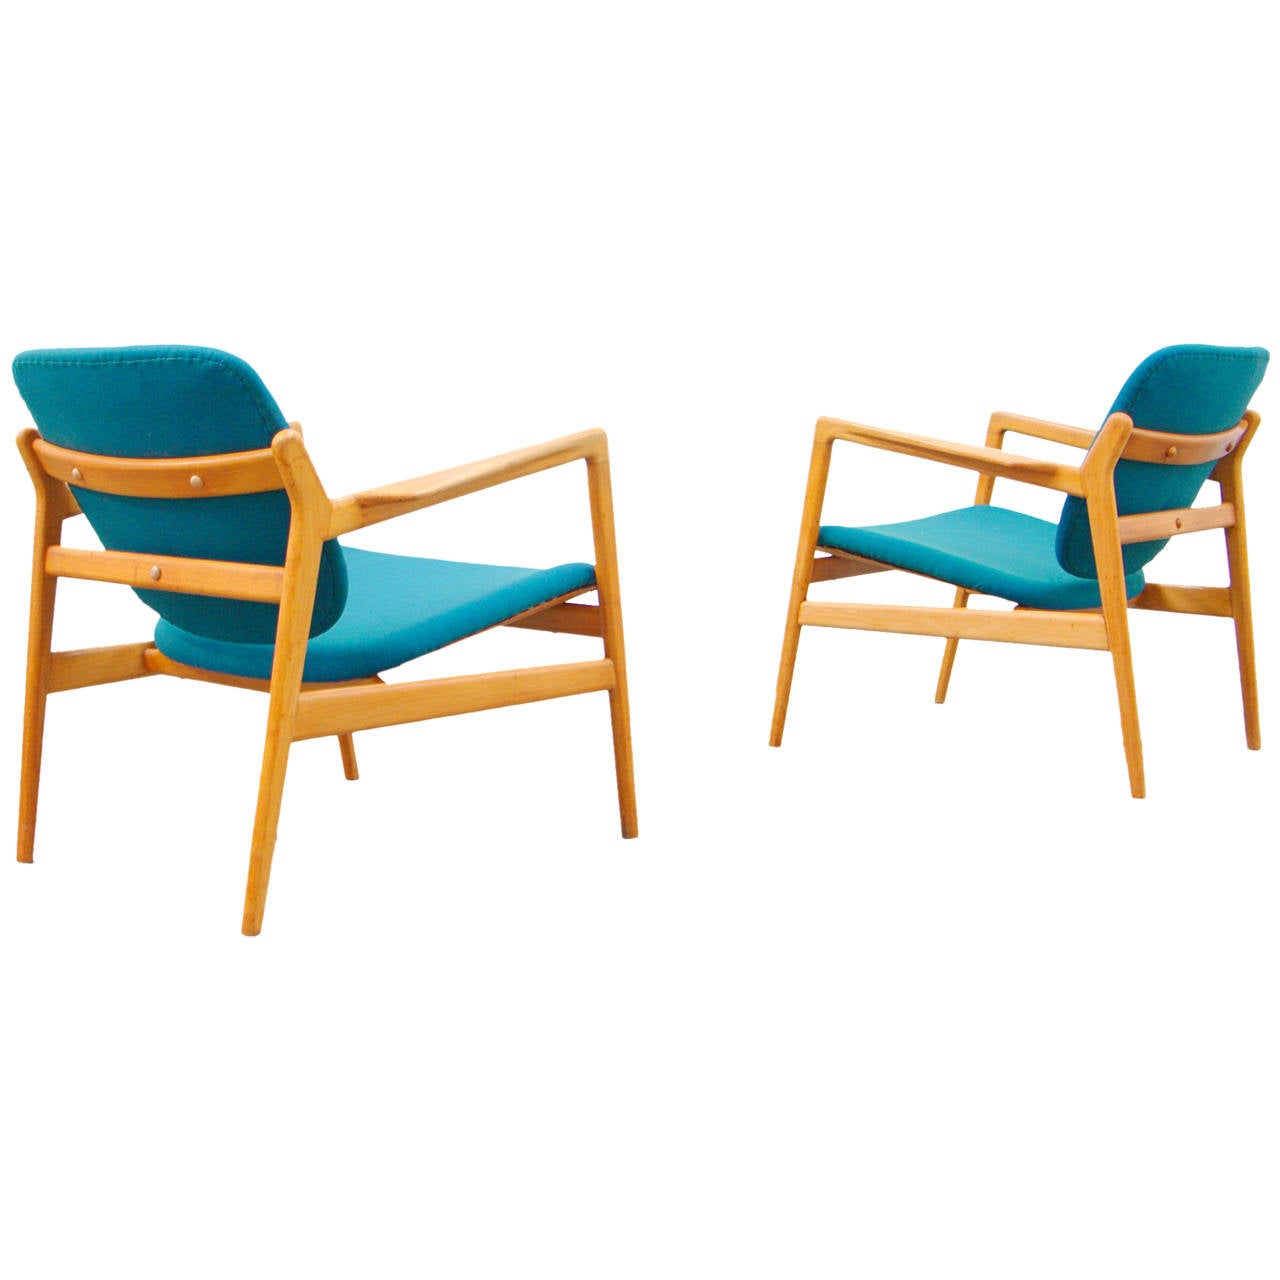 Pair of easy chairs mid 20th century modern design for Mid 20th century furniture